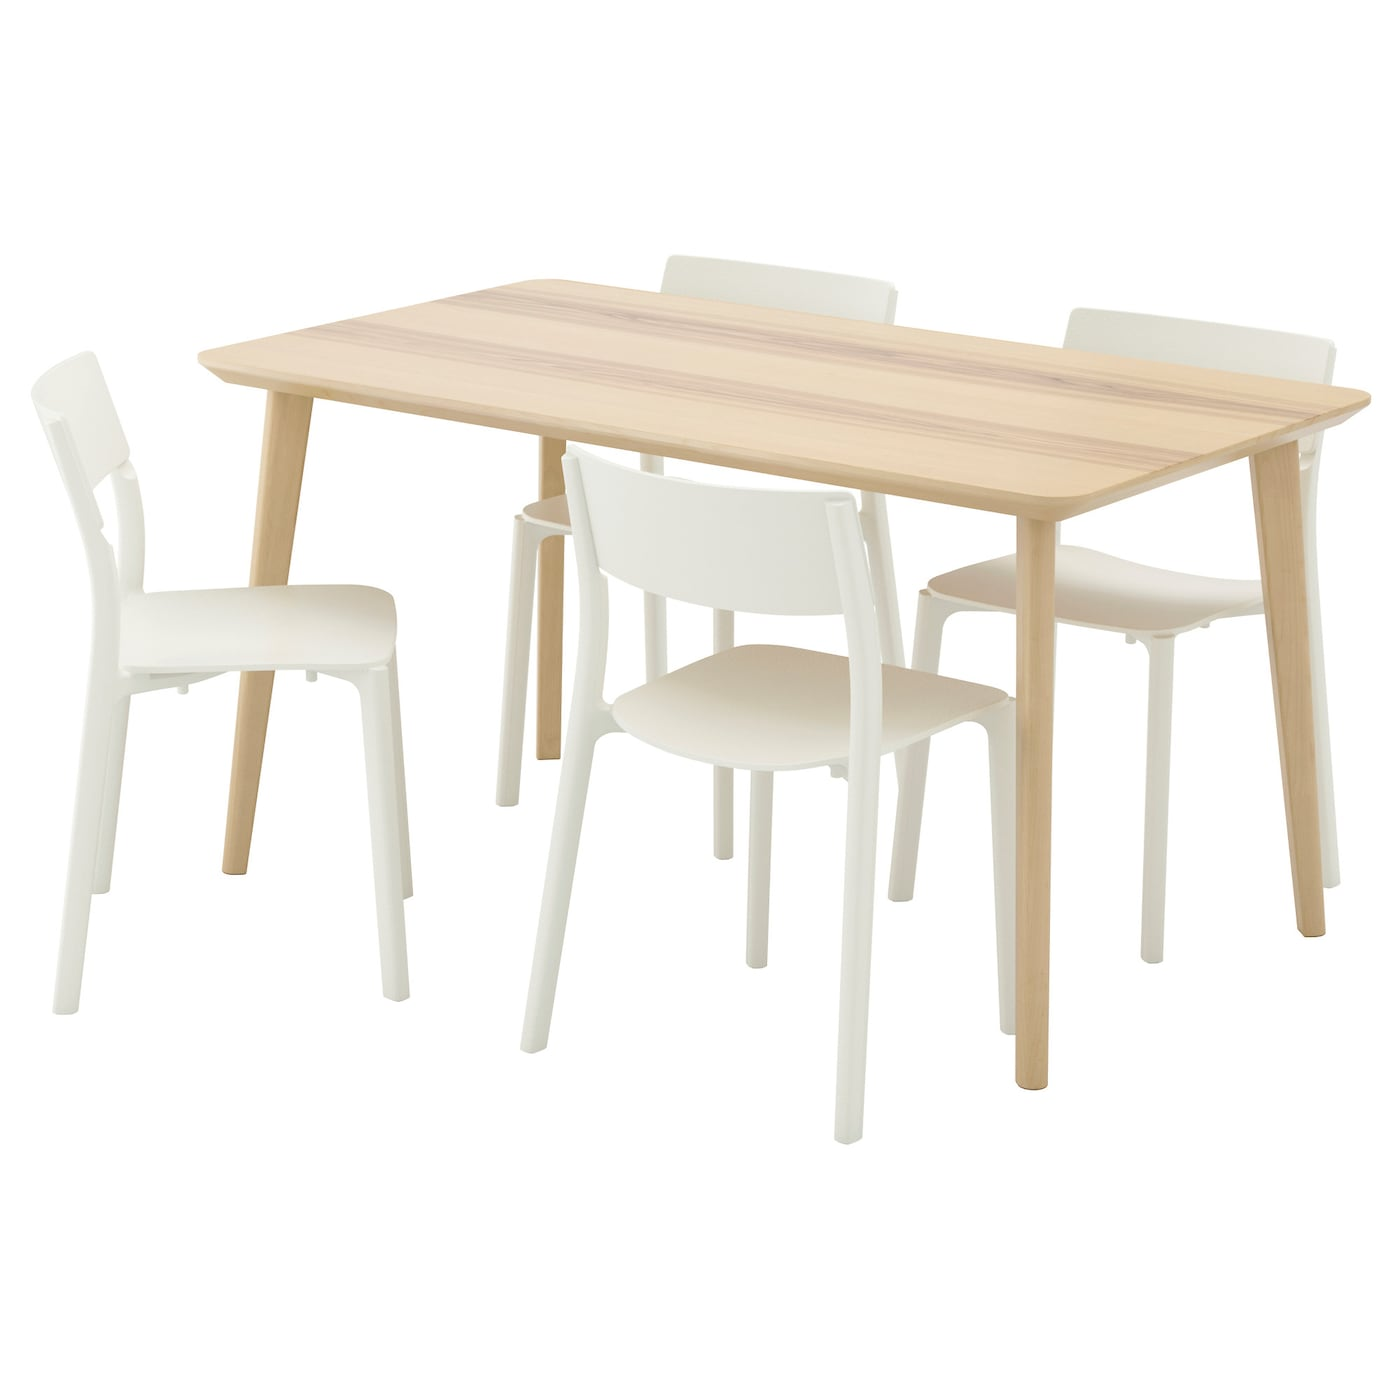 Janinge lisabo table and 4 chairs ash veneer white 140x78 for Table ikea 4 99